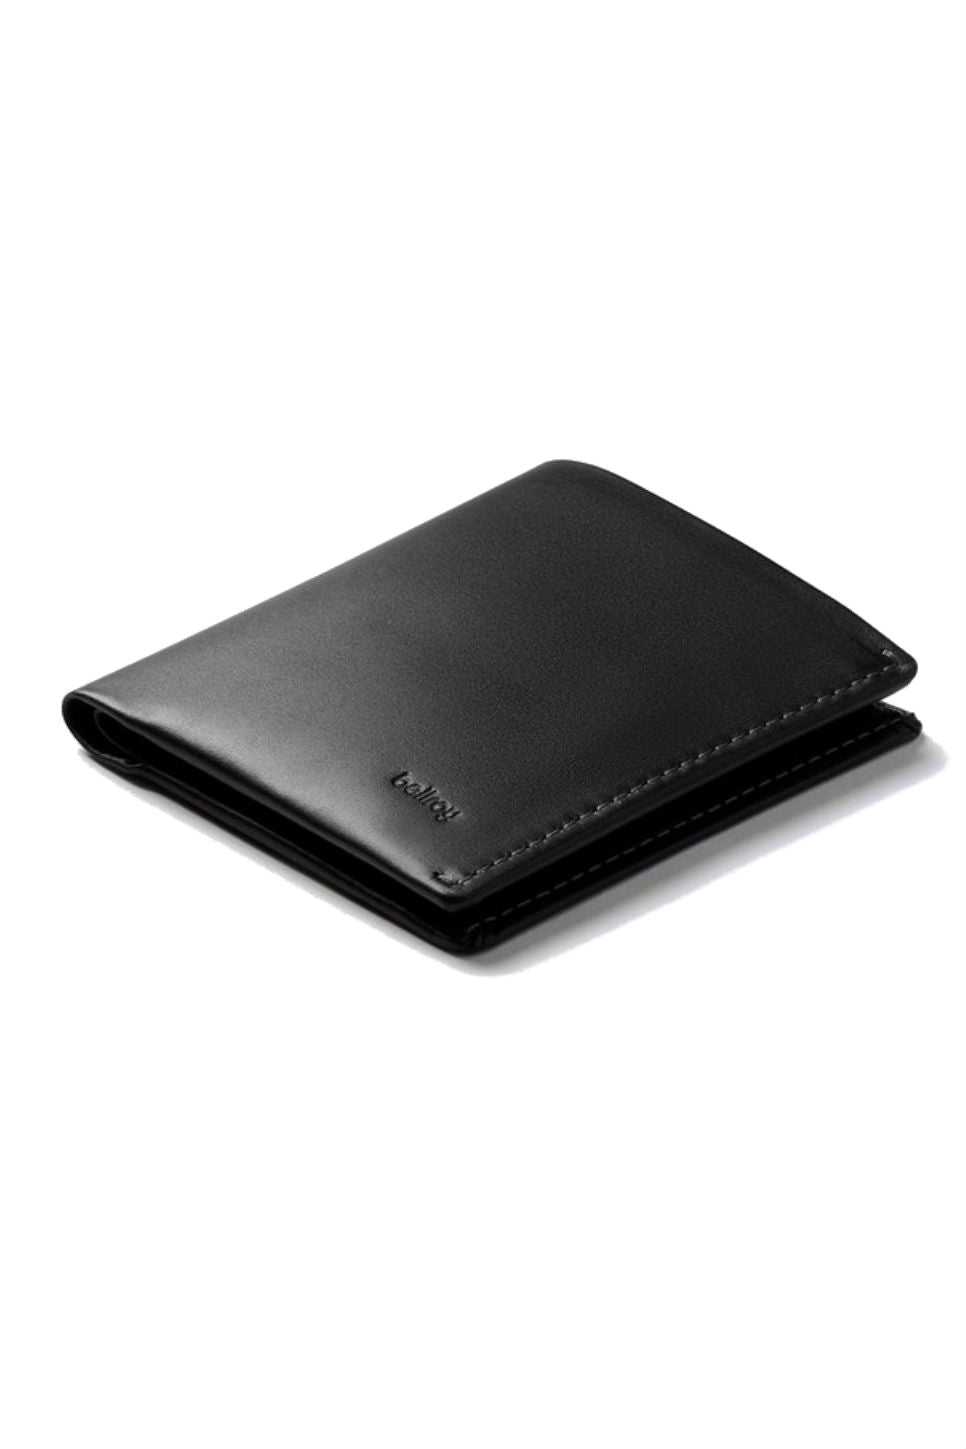 Bellroy - RFID Note Sleeve - Black